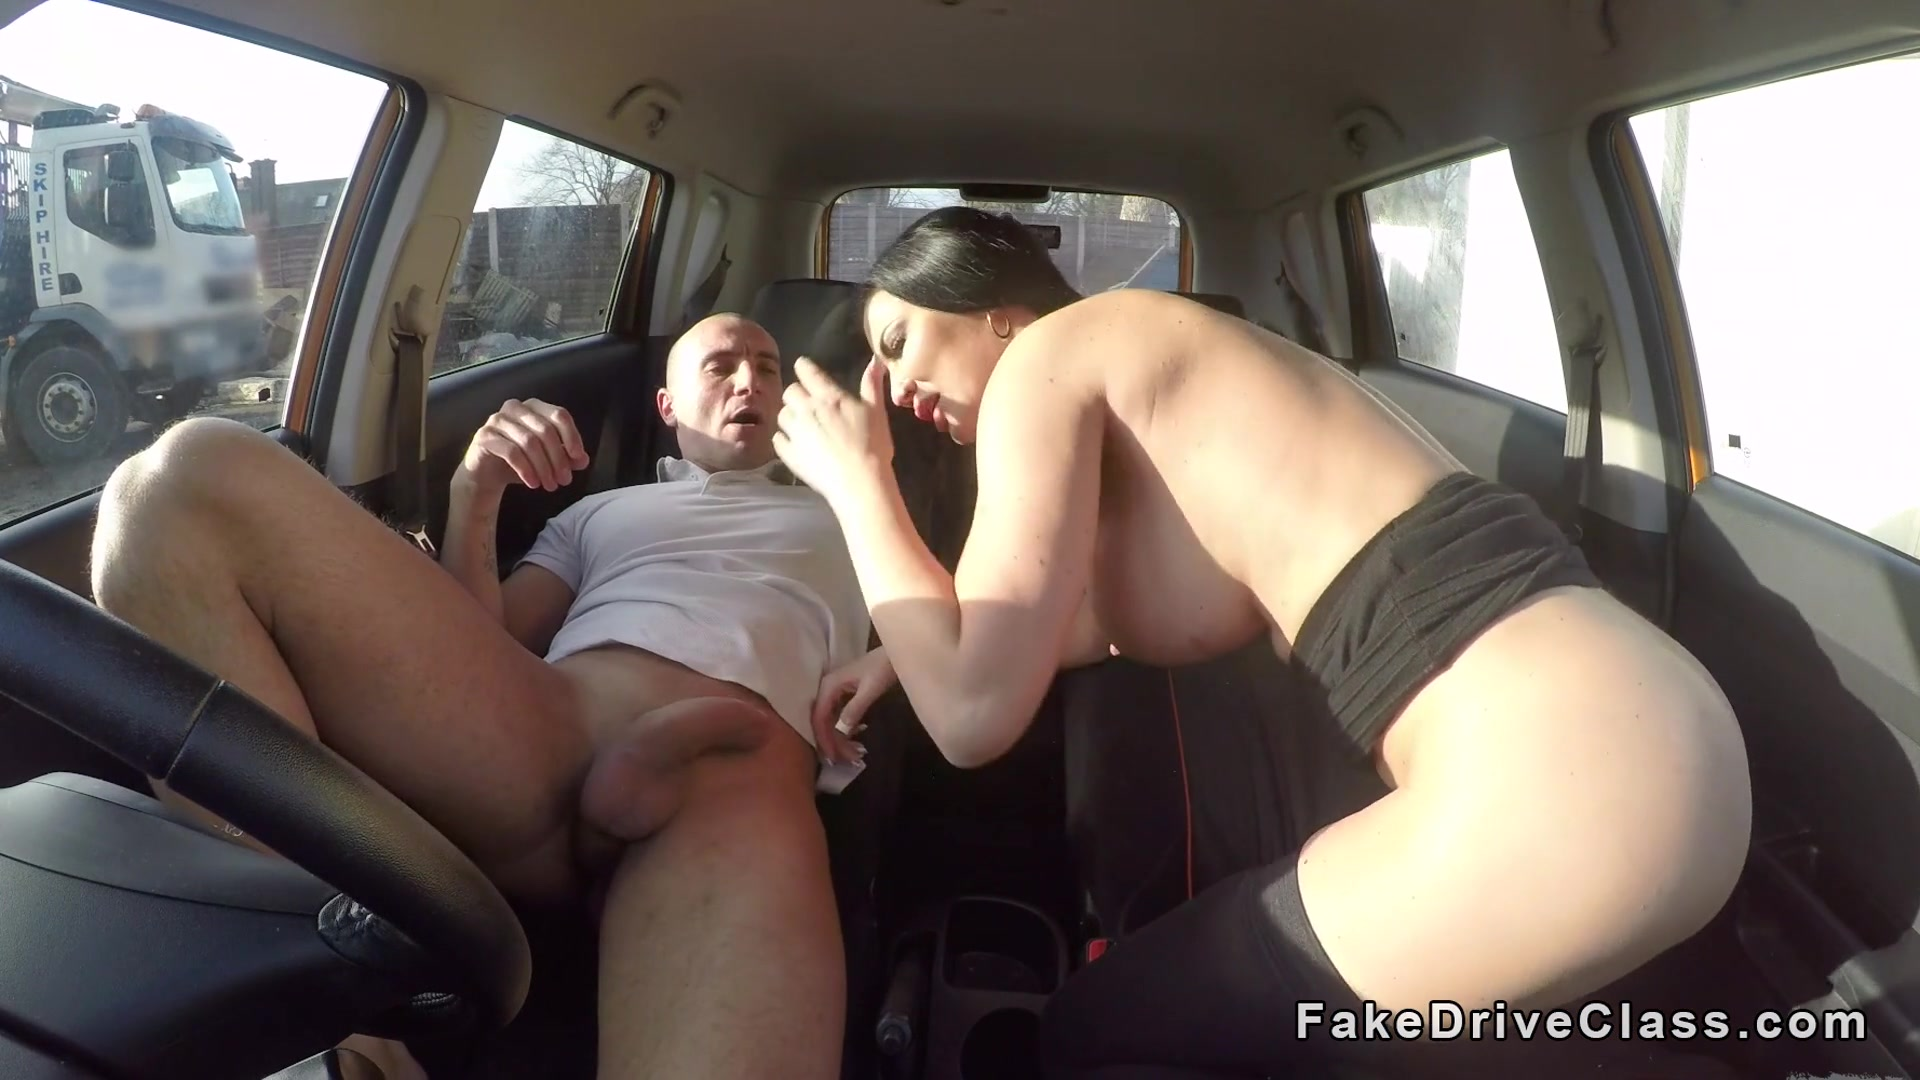 was specially registered cuckold filming his wife fucking in car think, you will